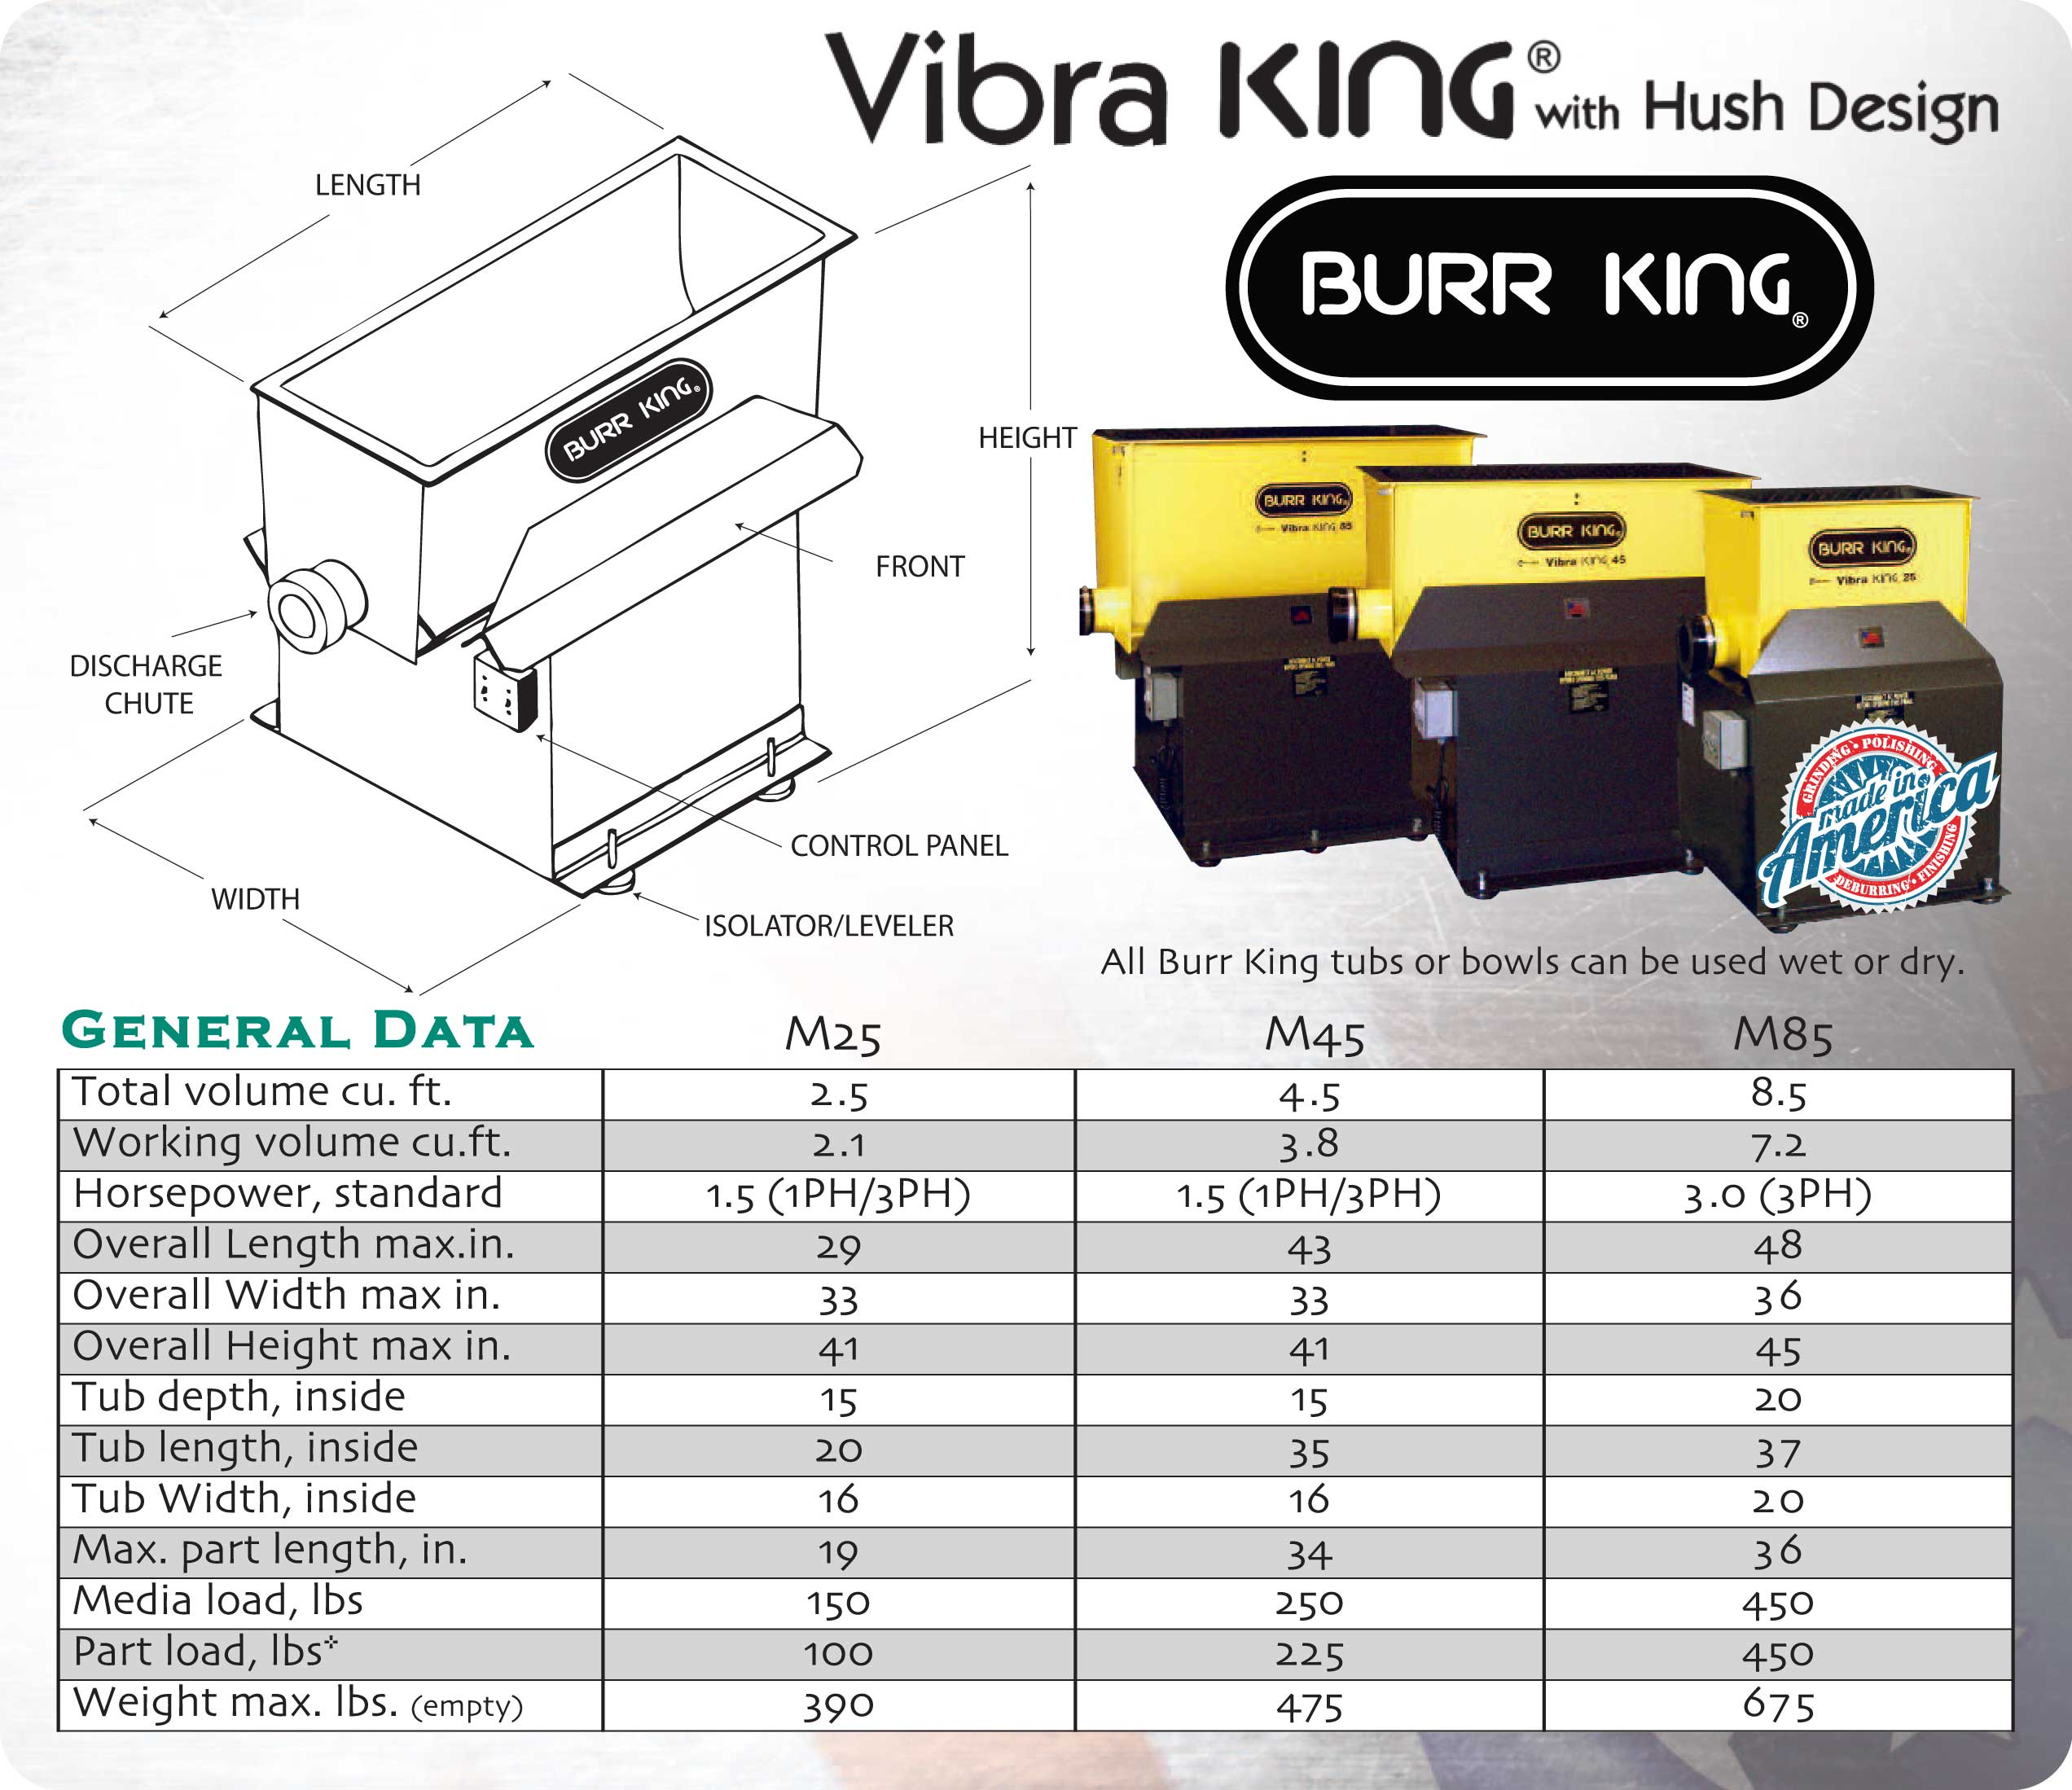 M25/M45/M85 Burr King Vibratory Specifications